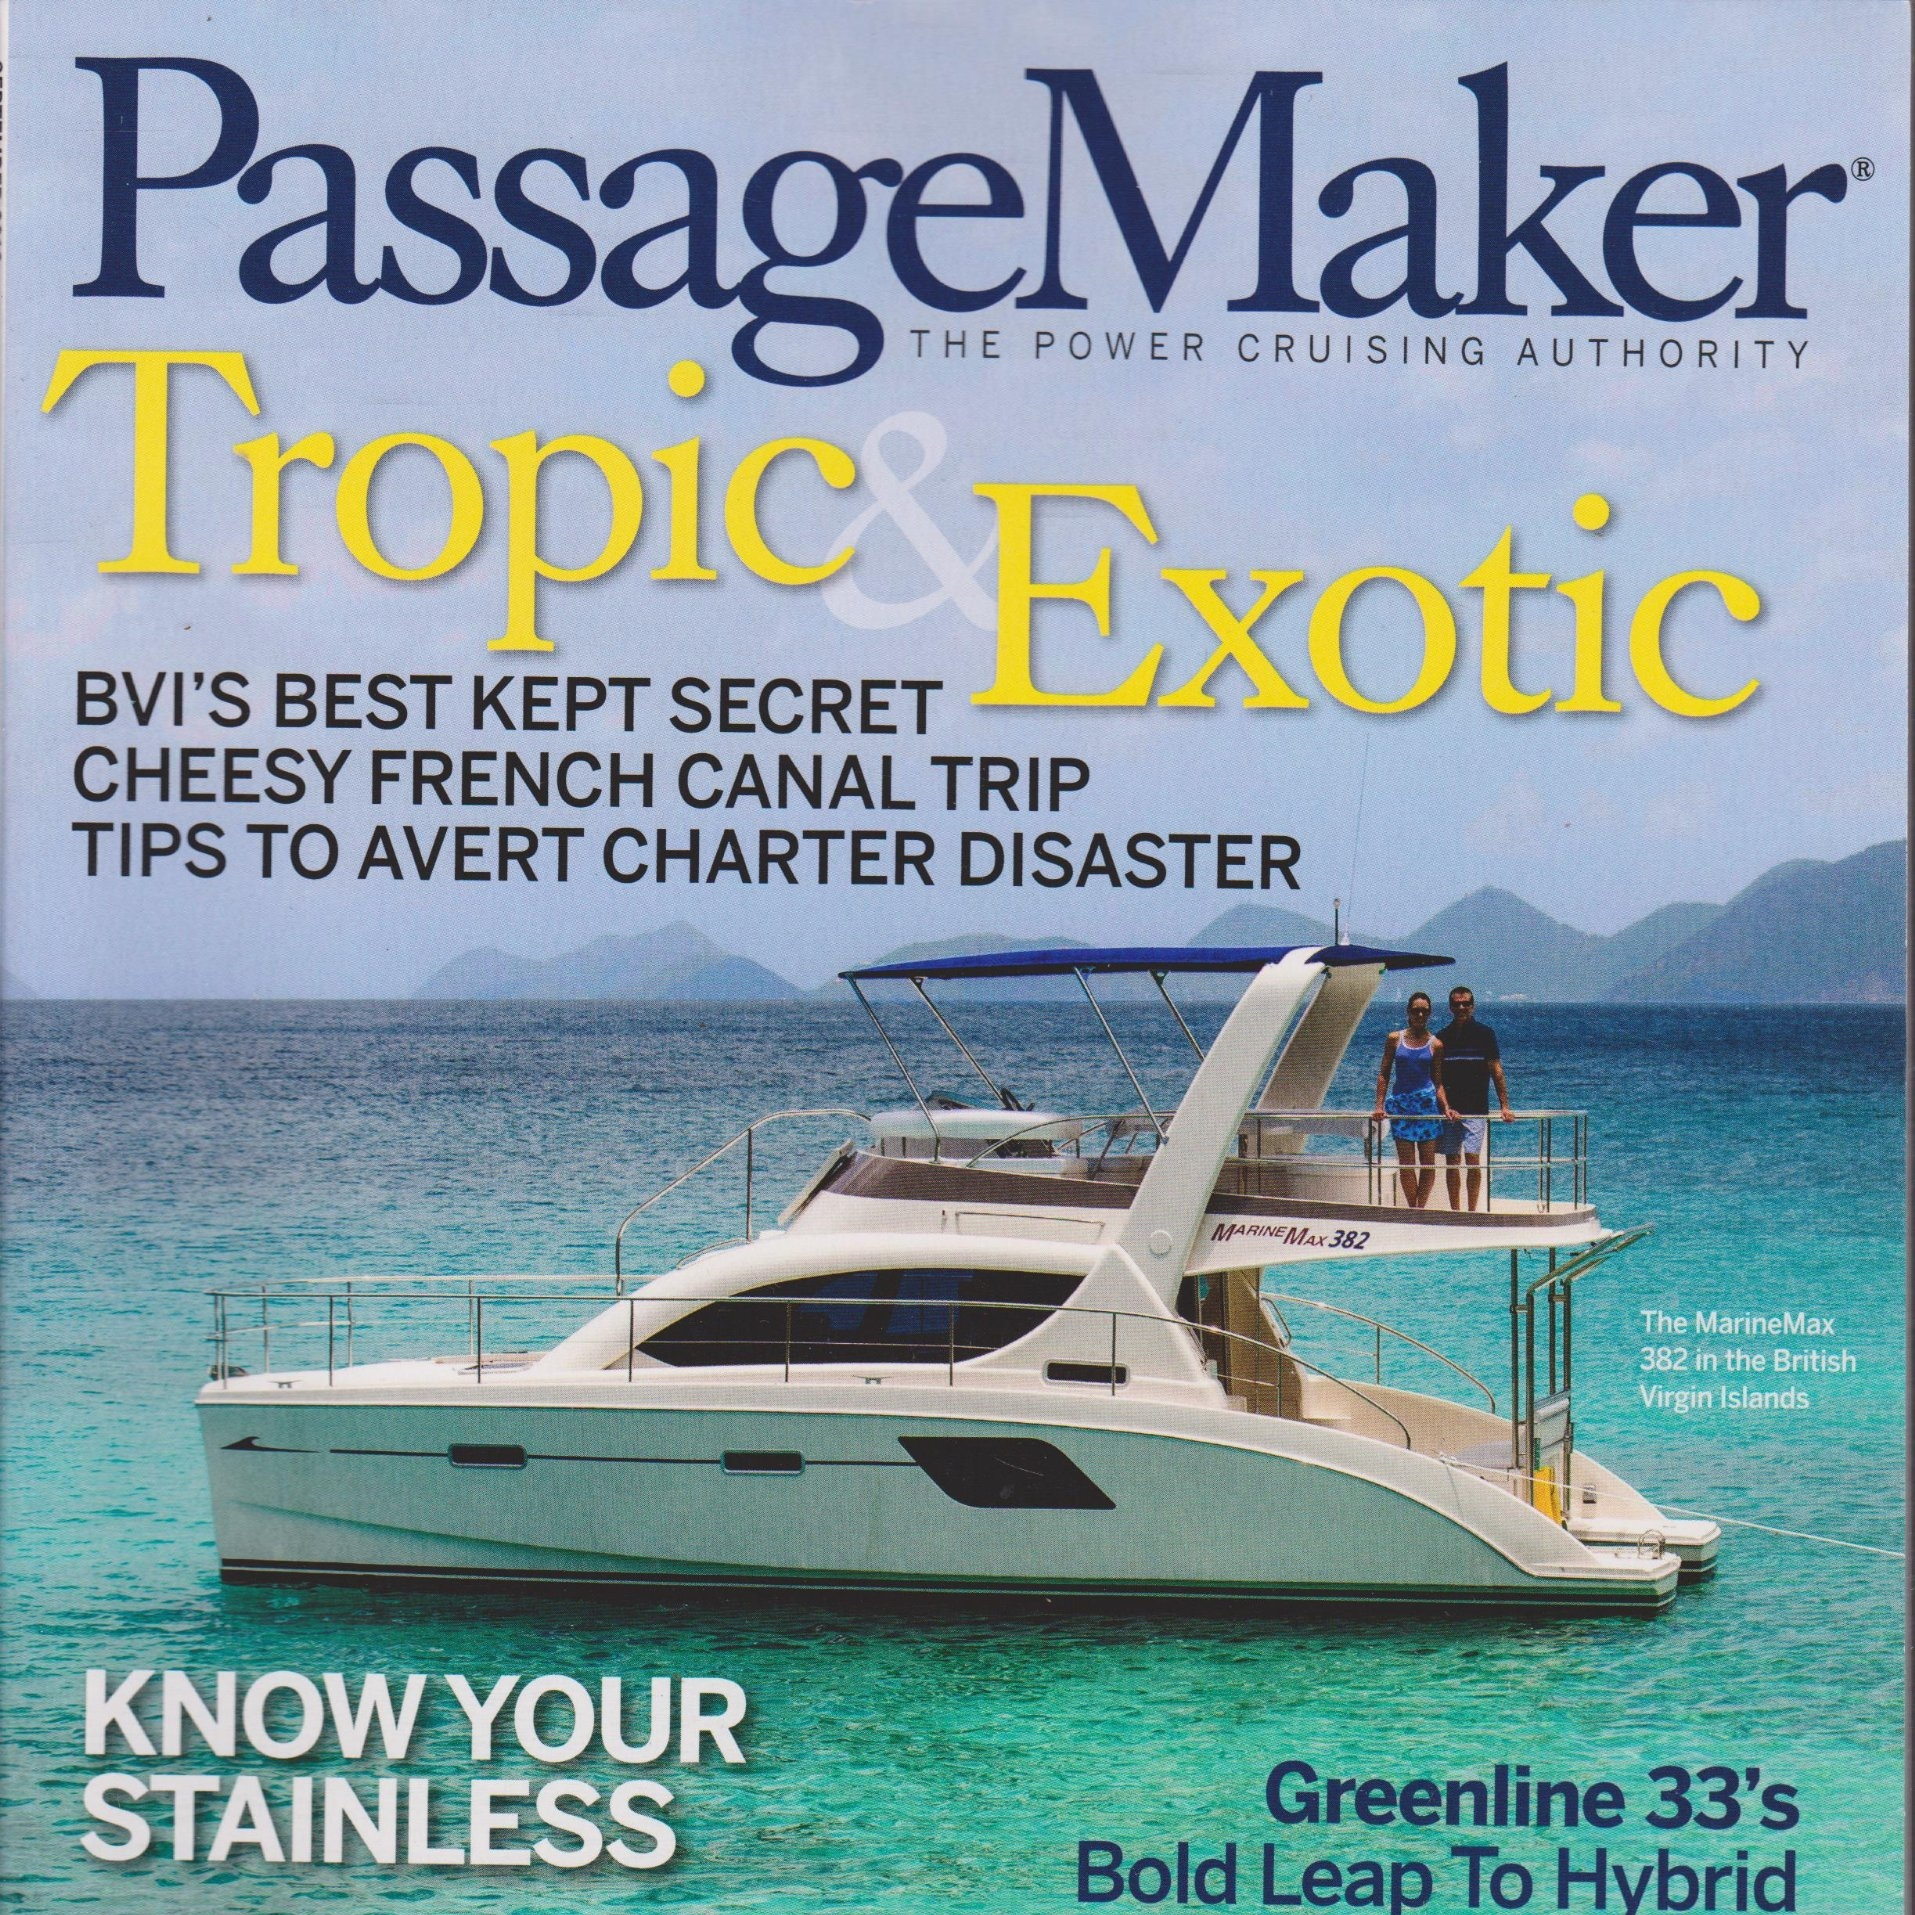 passage-maker-magazine-september-2013_23622937.jpeg